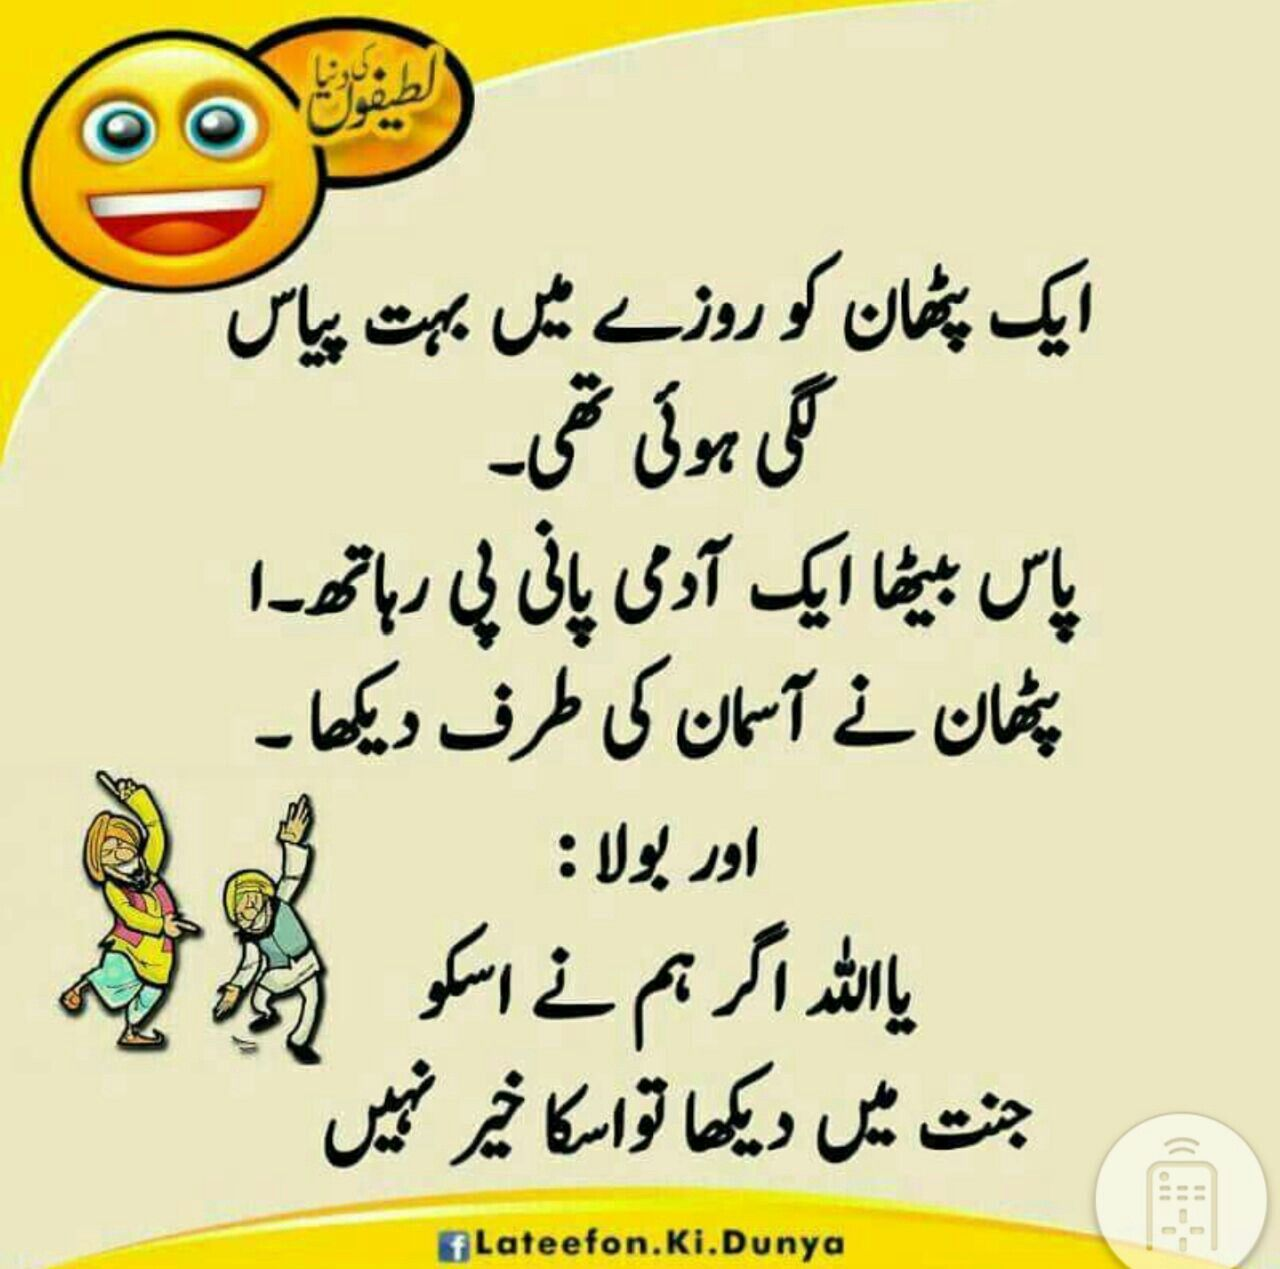 Pin By Saleem Shshzad On Funy Jokes Quotes Funny Words Urdu Funny Quotes